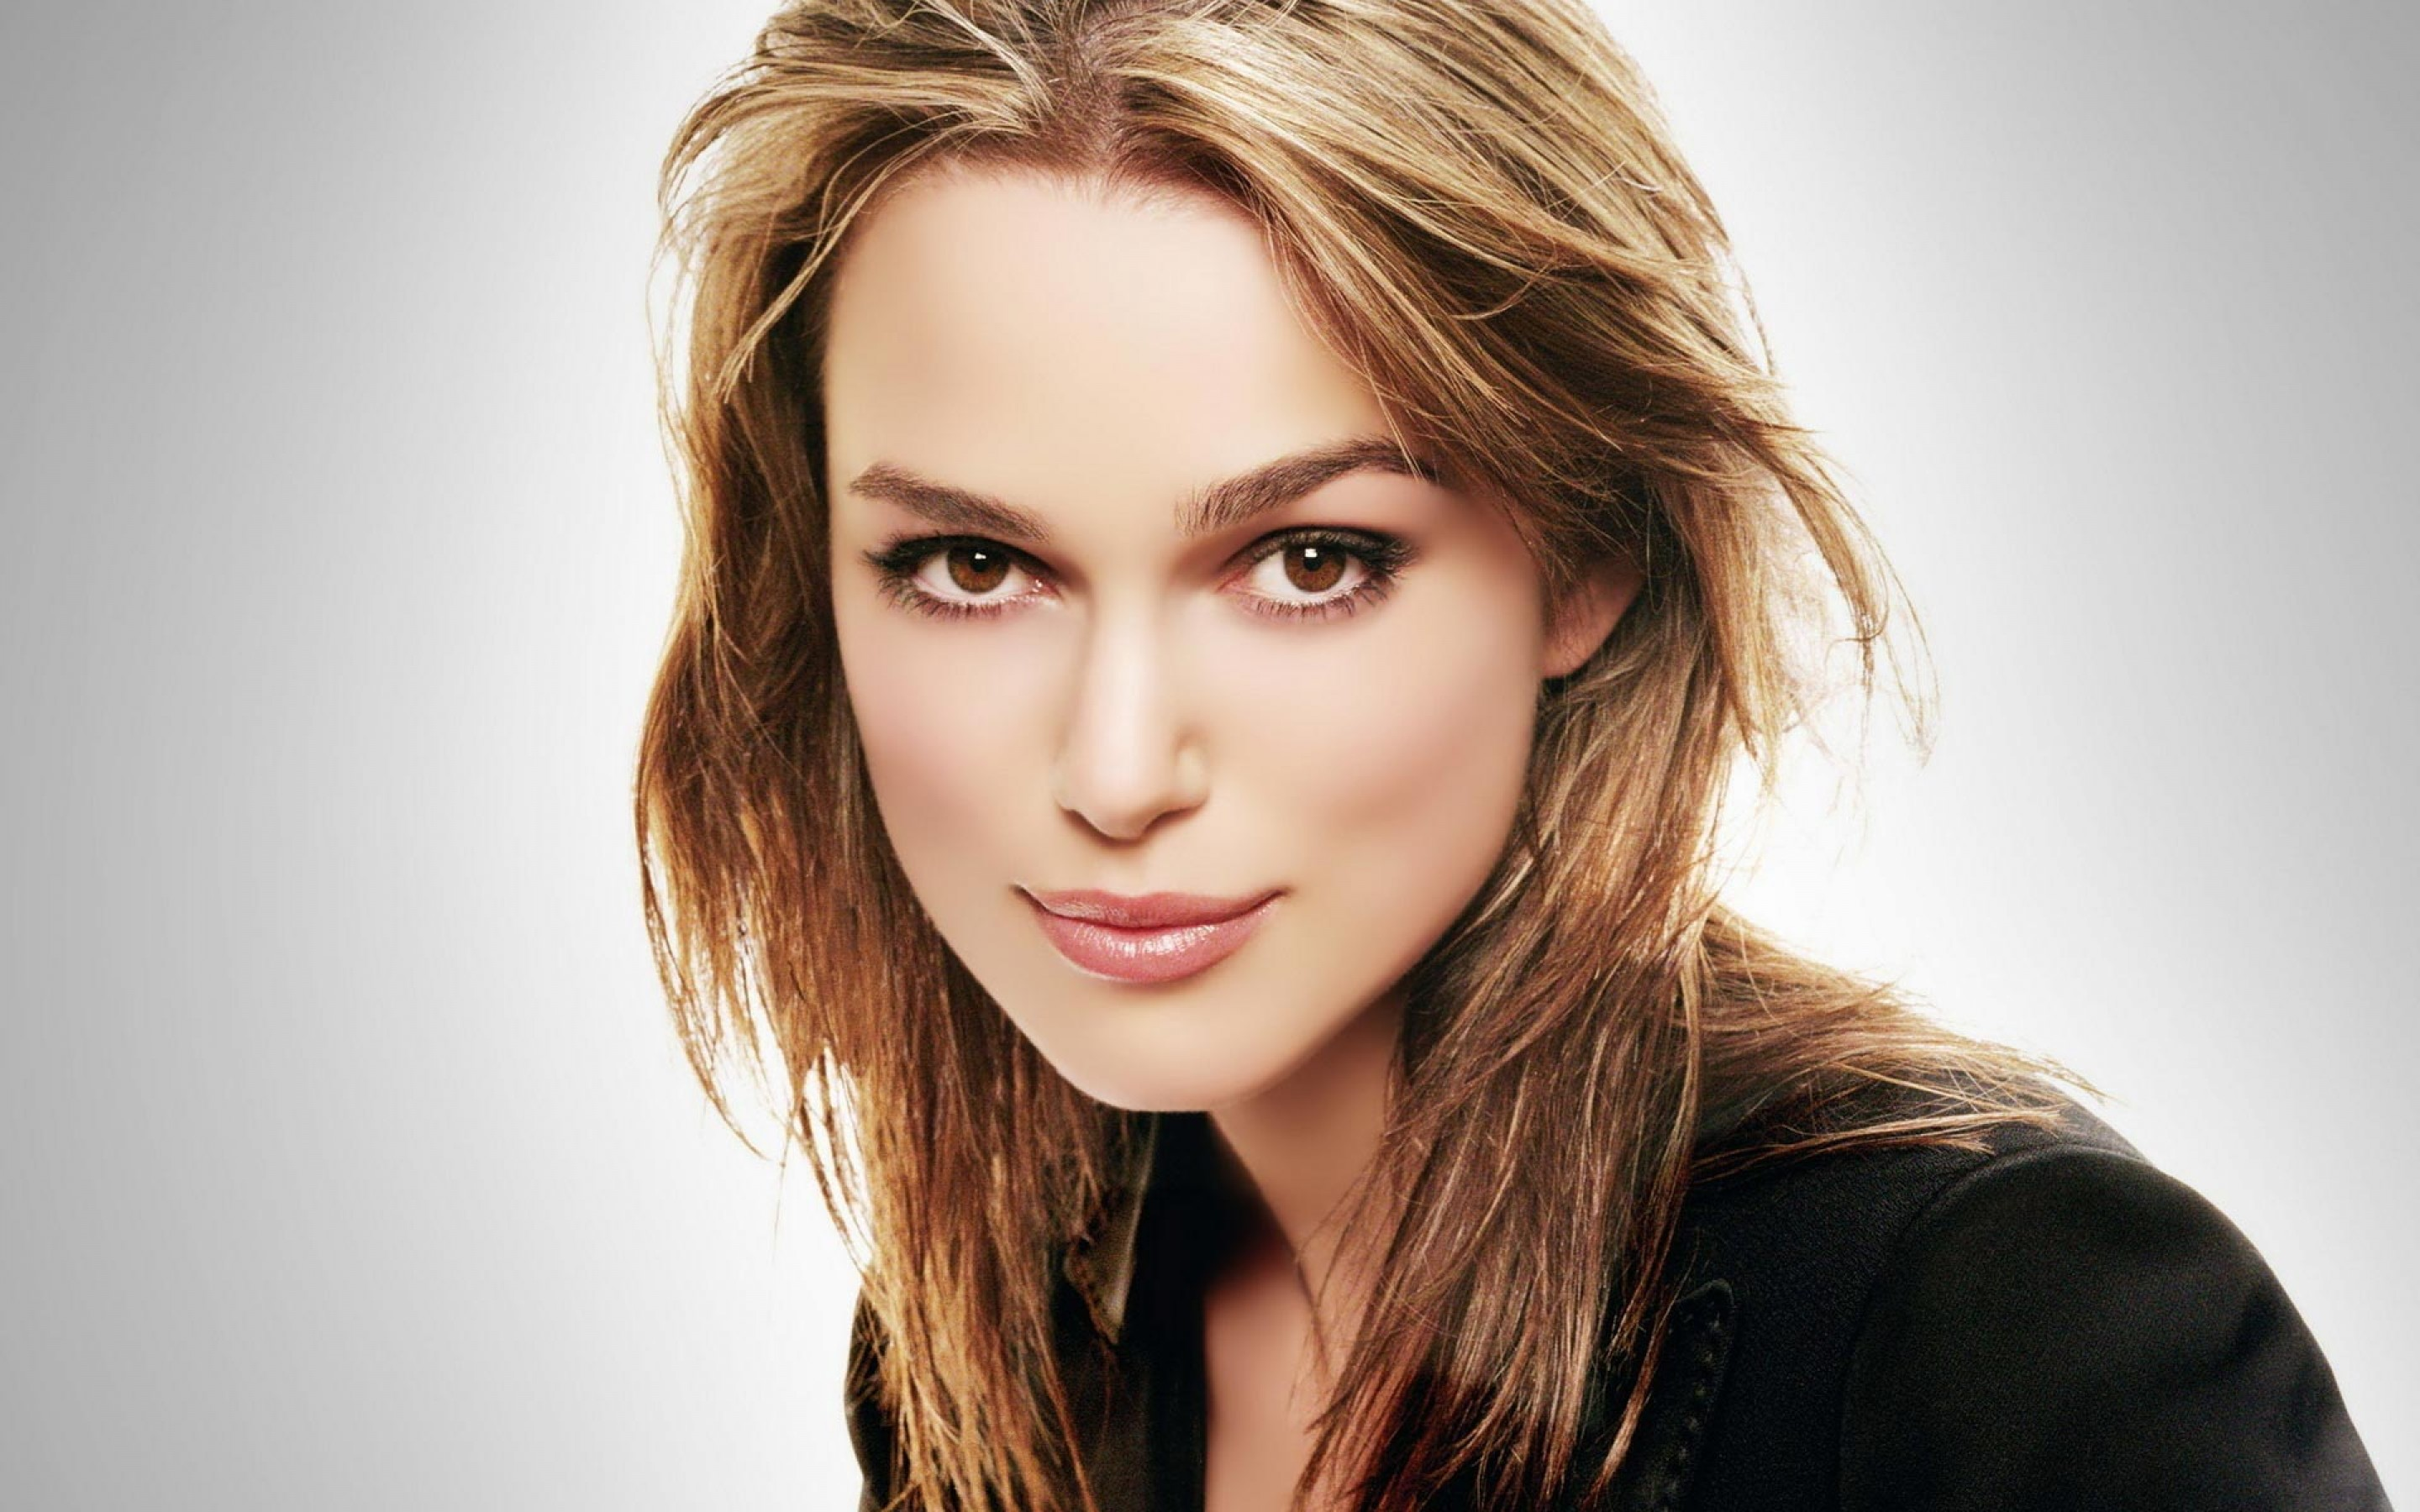 2880x1800 - Keira Knightley Wallpapers 12